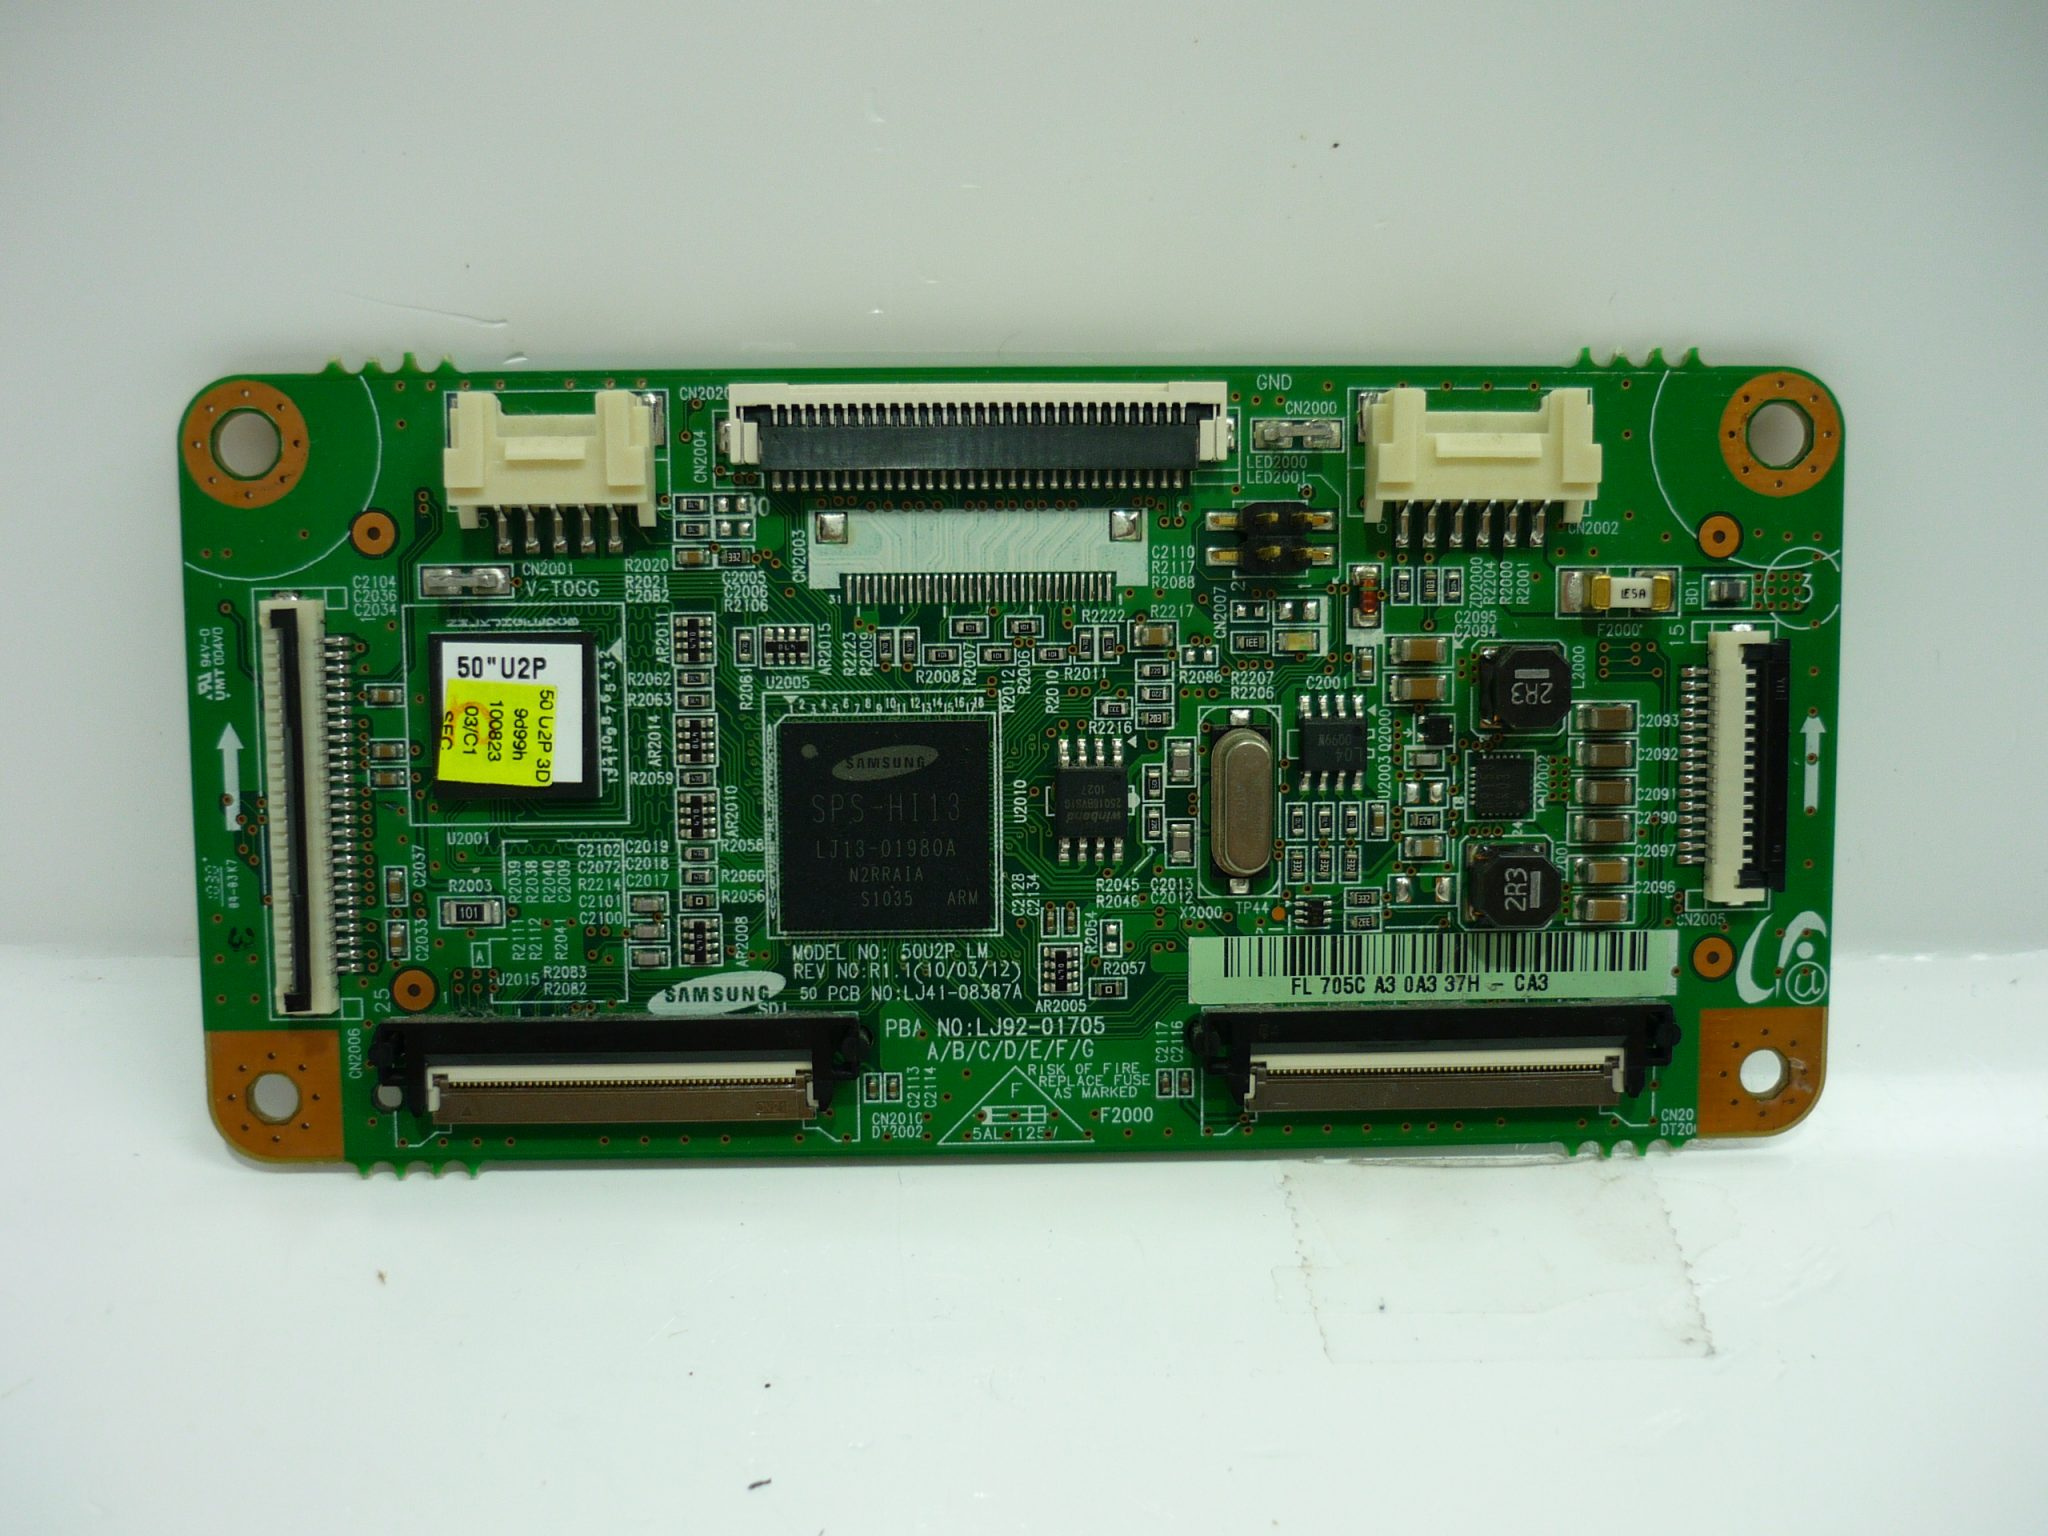 SKU: sj-LJ92-01705C Warranty: 180-Day Warranty Part Type: Main Logic CTRL Board, Control Board, Logic Main, CTRL Board Part Number: LJ92-01705C Part Usage: Plasma Panel Manufacturer: Samsung PCB Number: LJ41-08387A PBA Number: LJ92-01705C Notes, Comments & Additional Information: ShopJimmy recommends ordering by part number whenever possible. Often times there are TV models that use more than one set of parts and/or panels. Brands: Insignia, Samsung Important Message: Partial PBA number (705C) can be found on a sticker. TV Part Types: Logic Board TV Models: Insignia NS-50P650A11 Samsung PN50C430A1DXZA PN50C450B1DXZA